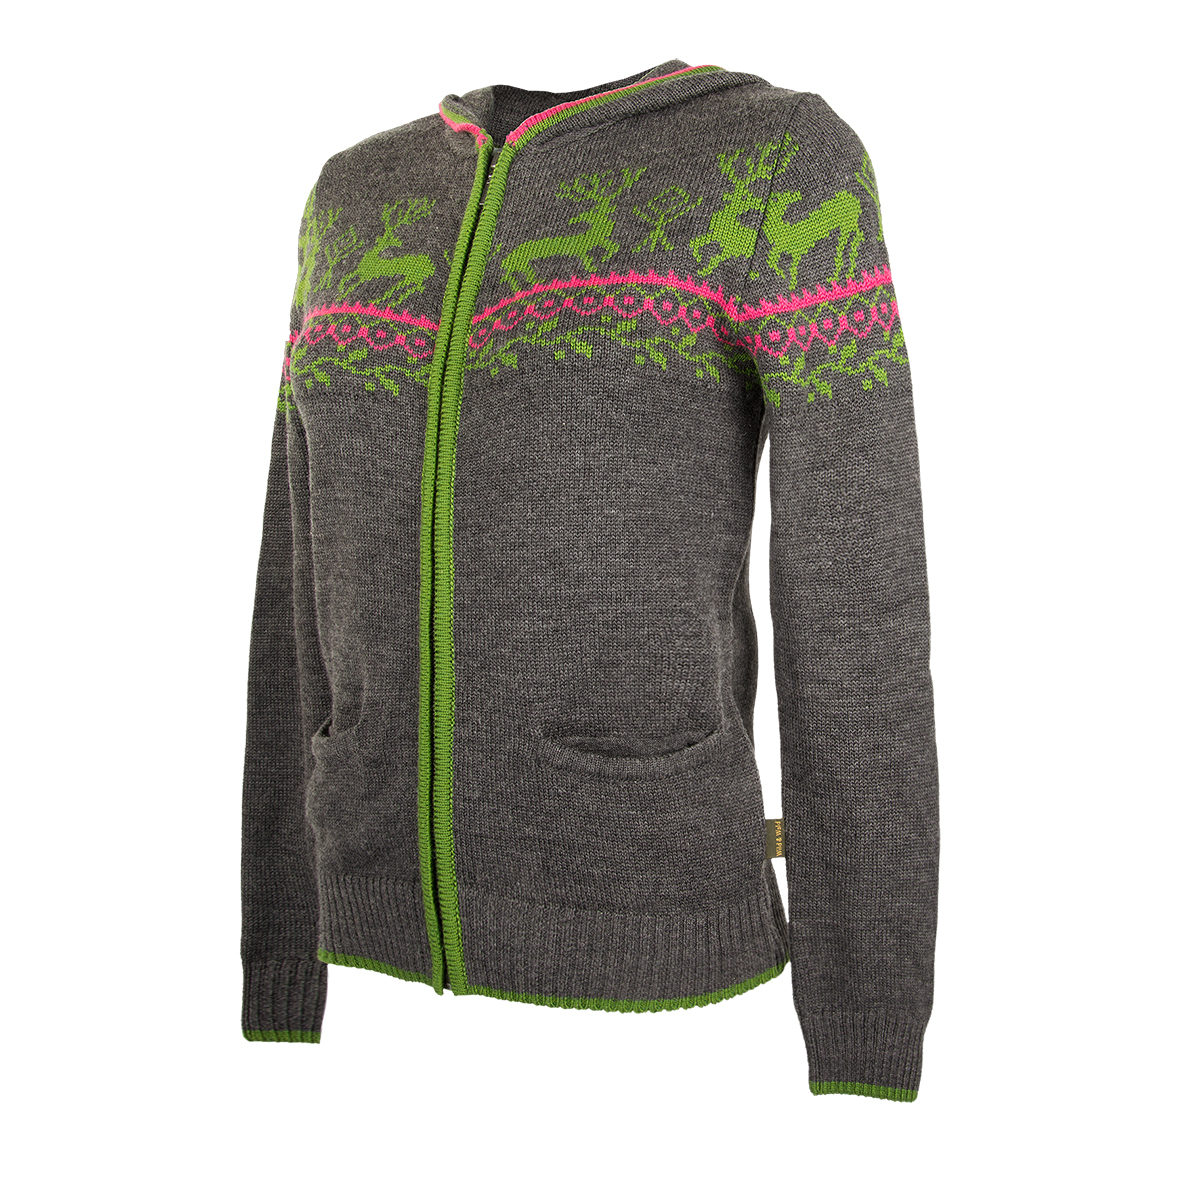 Wild & Wald Strickjacke Damen Edith im Pareyshop